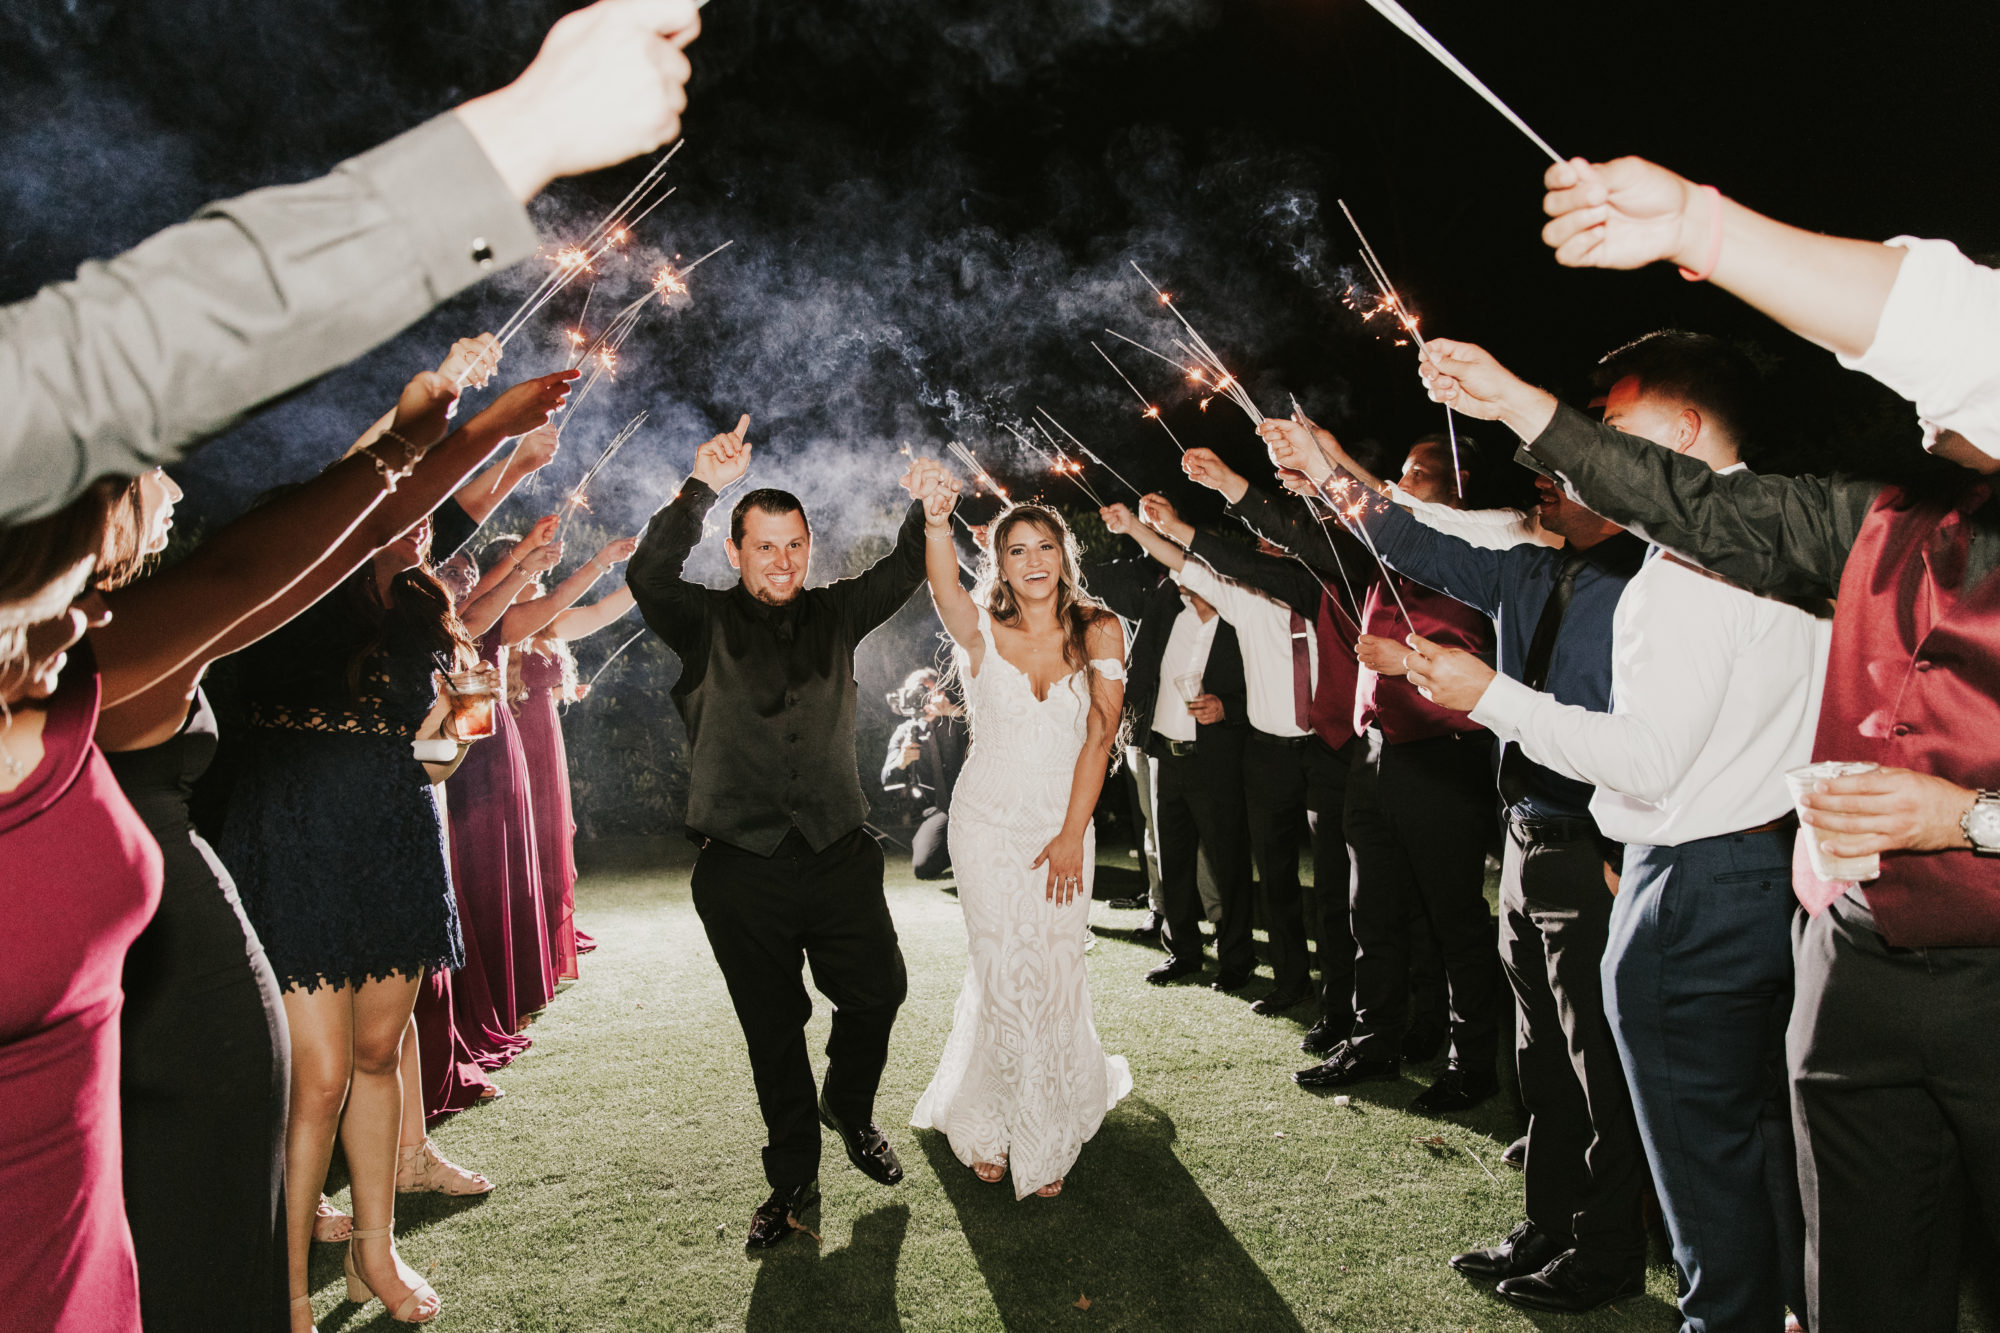 With 500 weddings executed, what makes one the best?